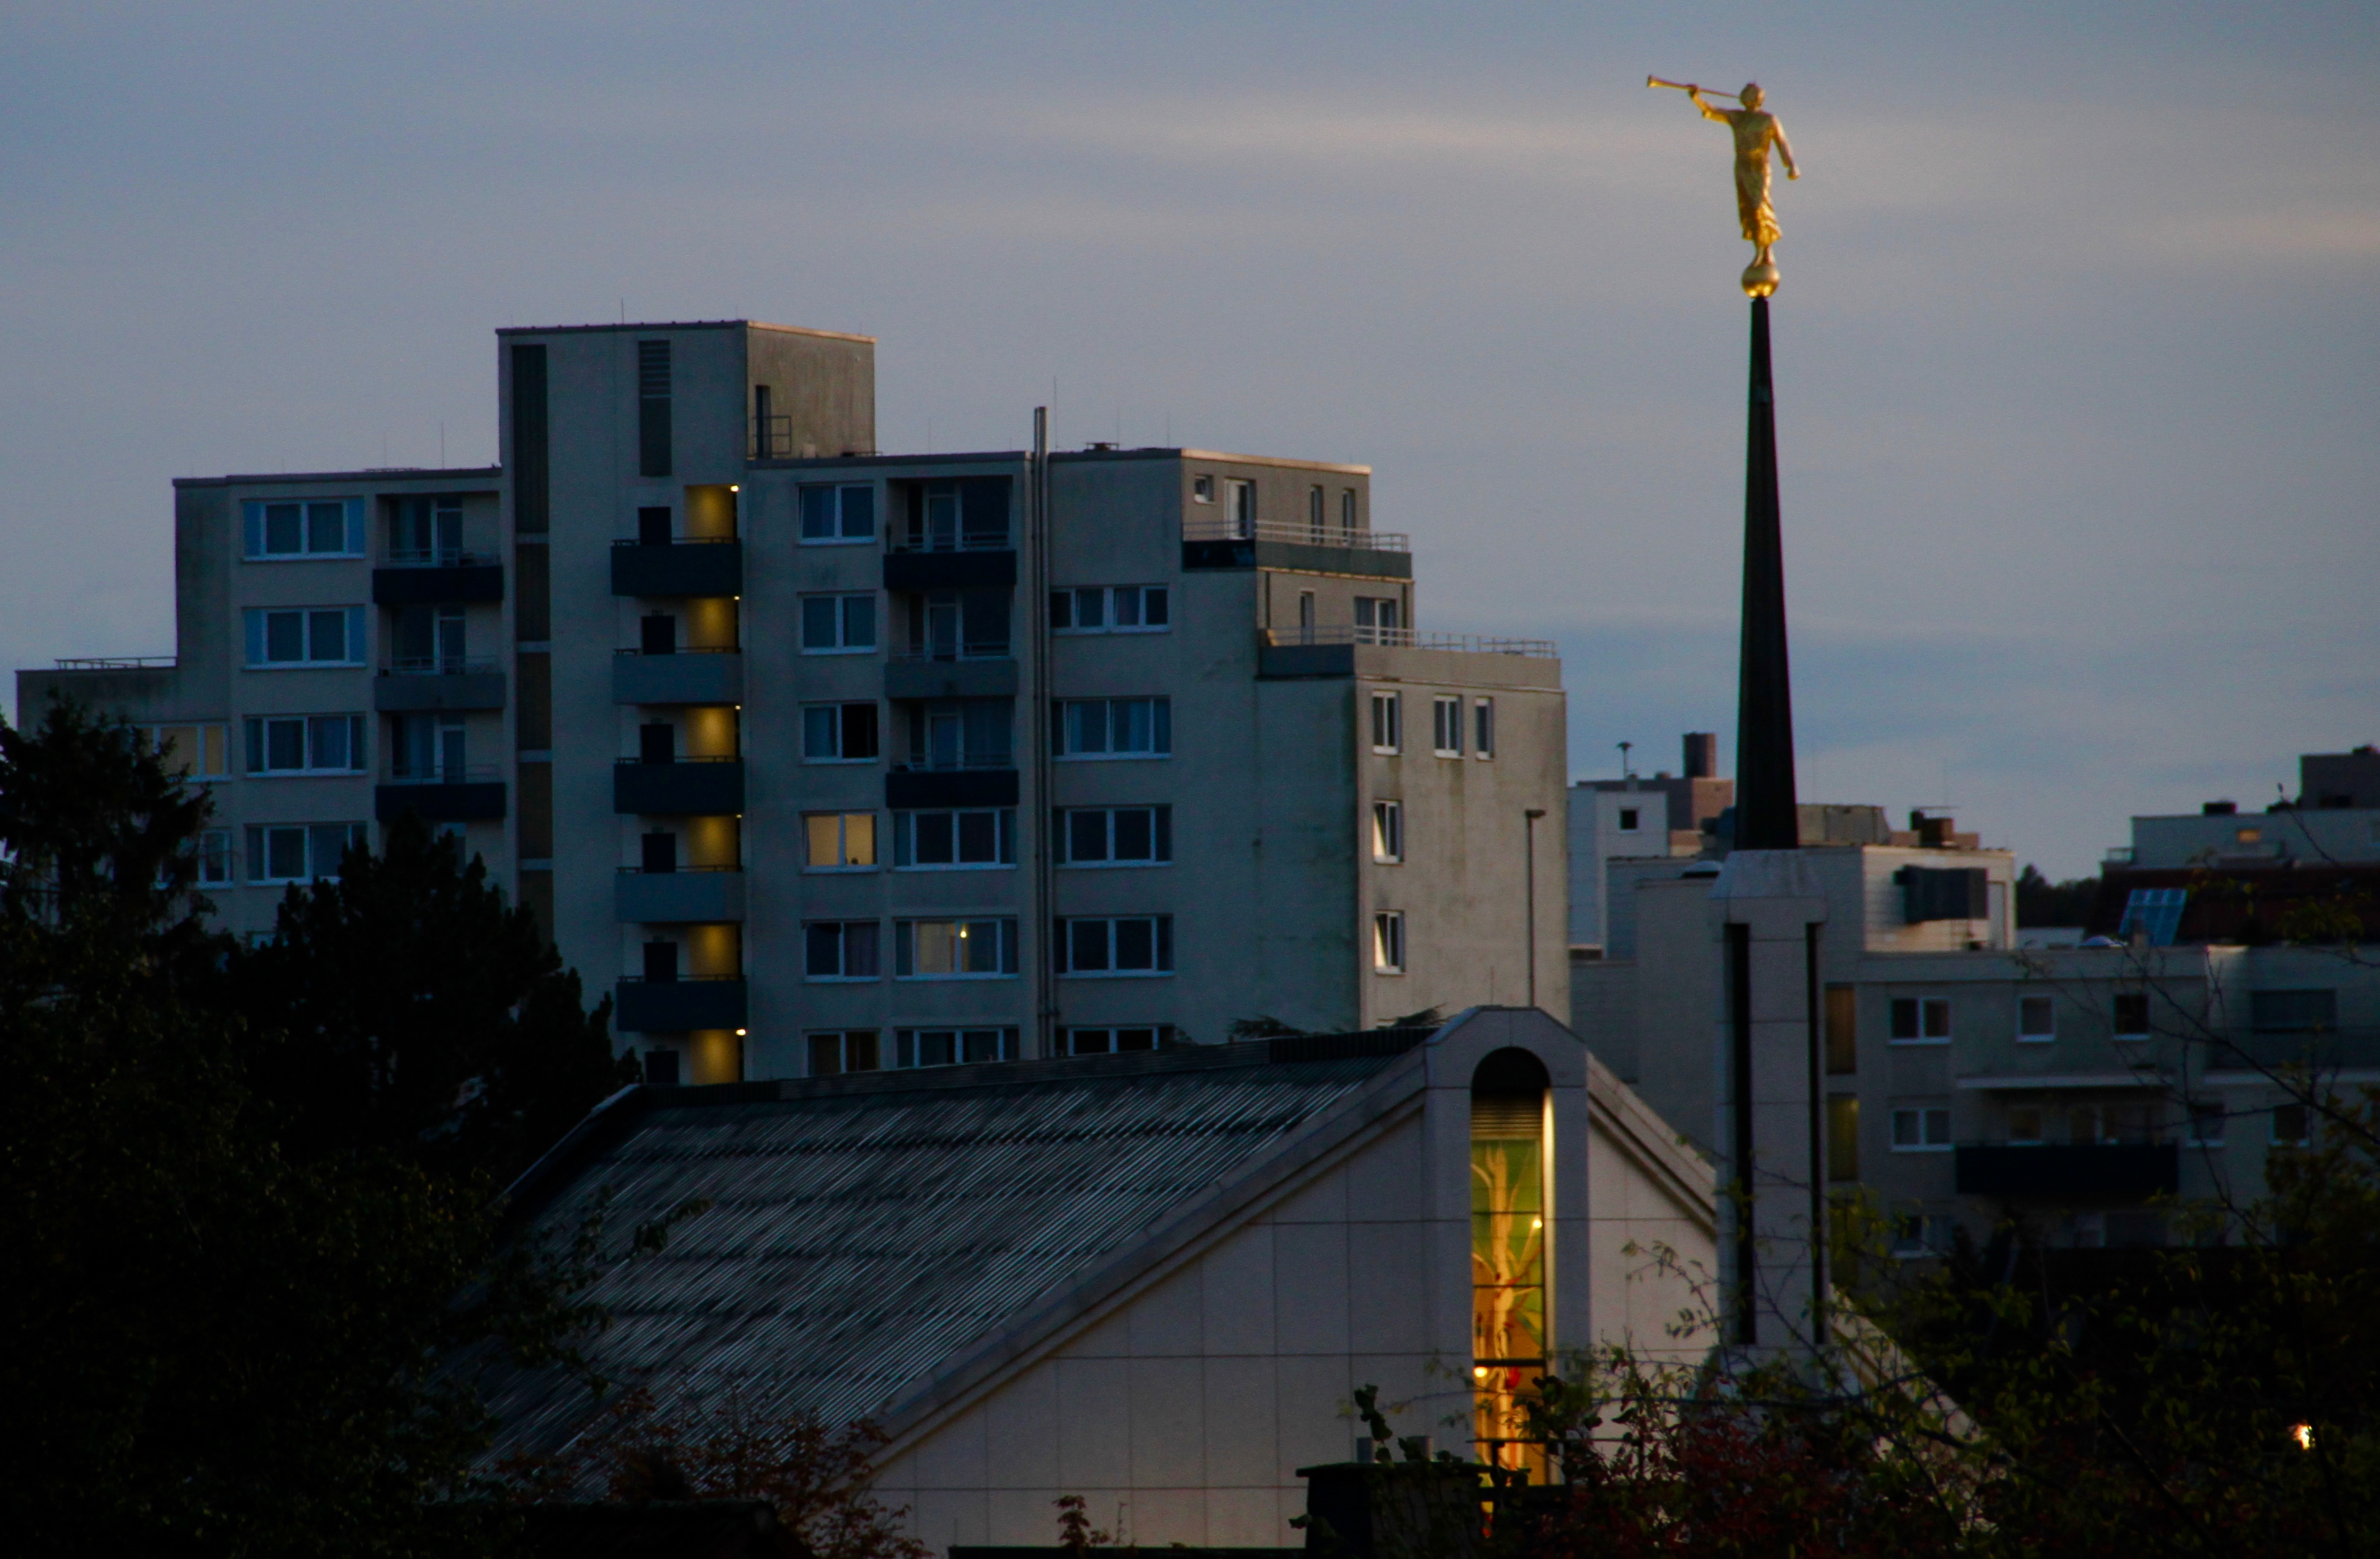 A long-distance view of the Frankfurt Germany Temple and spirt in front of neighboring buildings in Friedrichsdorf, Germany, at dusk on Oct. 18, 2019.